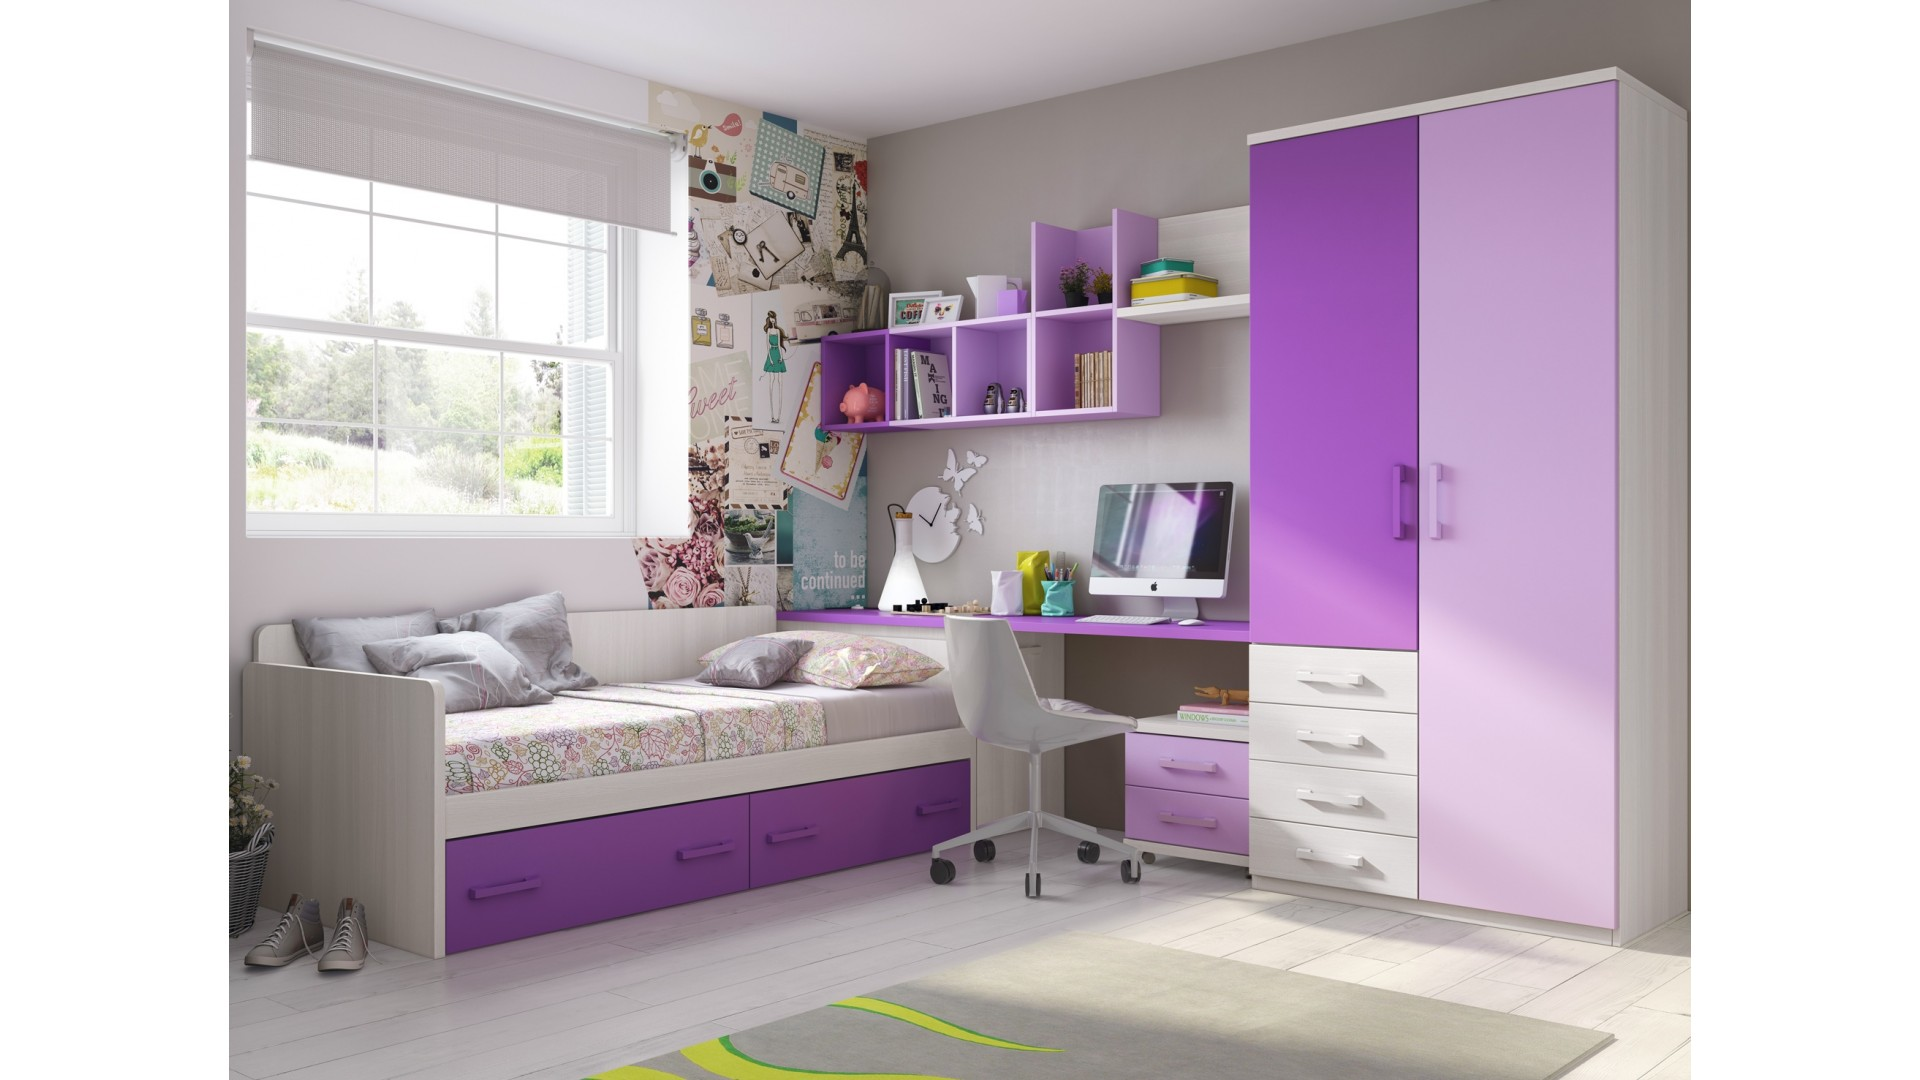 chambre ado fille avec armoire courbe pratique glicerio so nuit. Black Bedroom Furniture Sets. Home Design Ideas